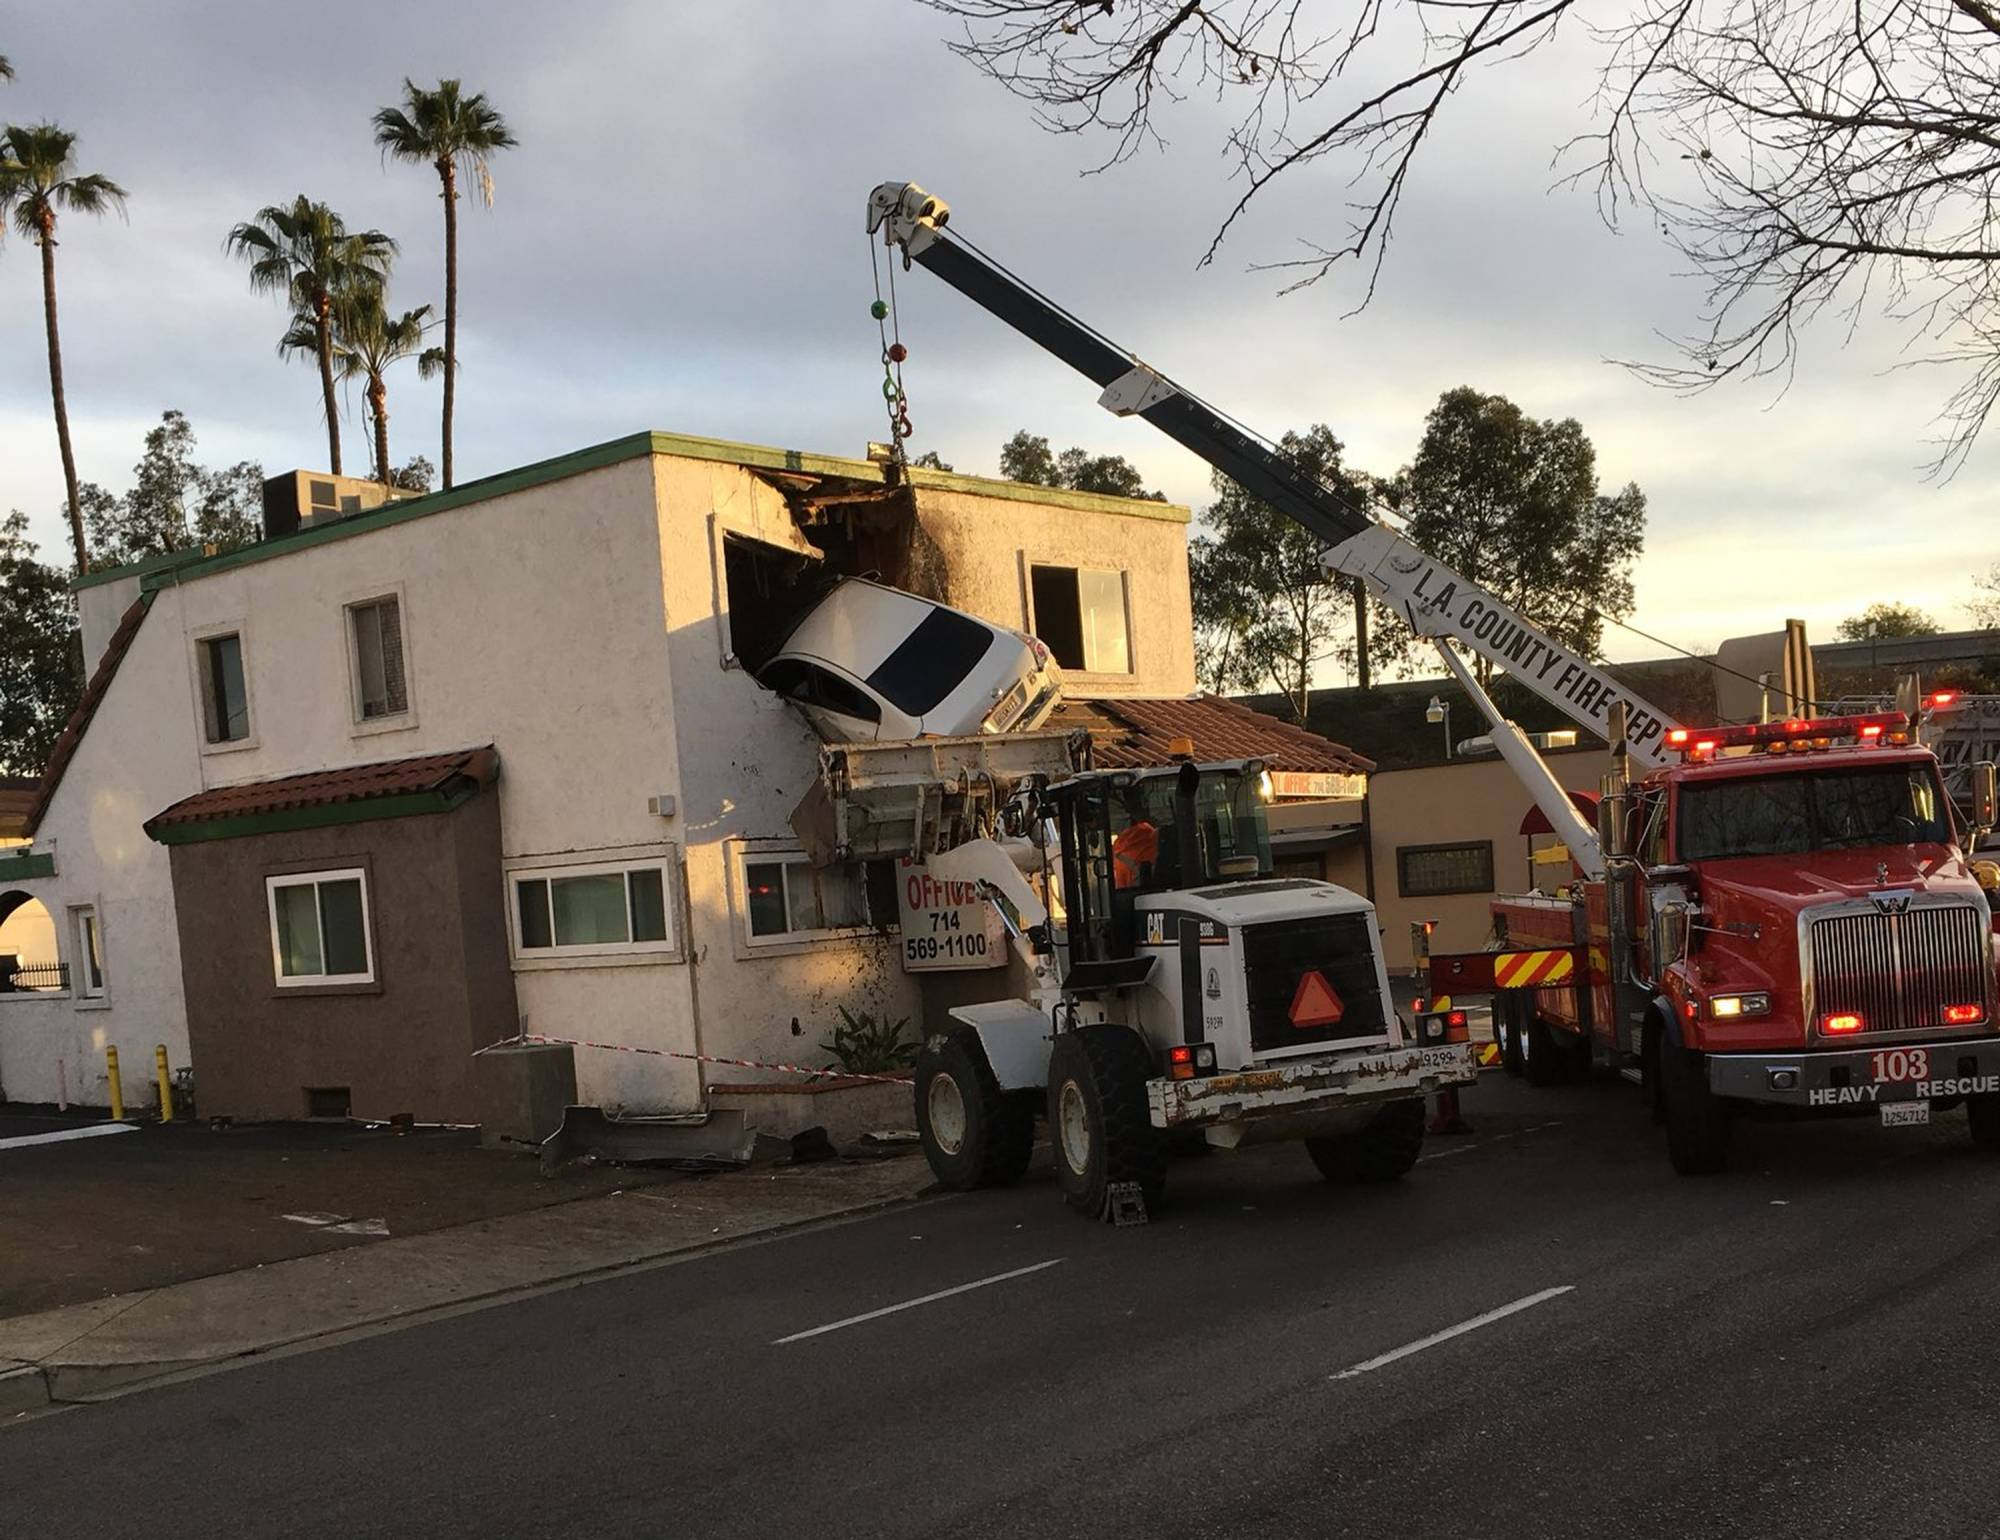 Santa Ana Auto Center >> Video shows moment car goes airborne, slams into 2nd floor of Calif. office | WTOP